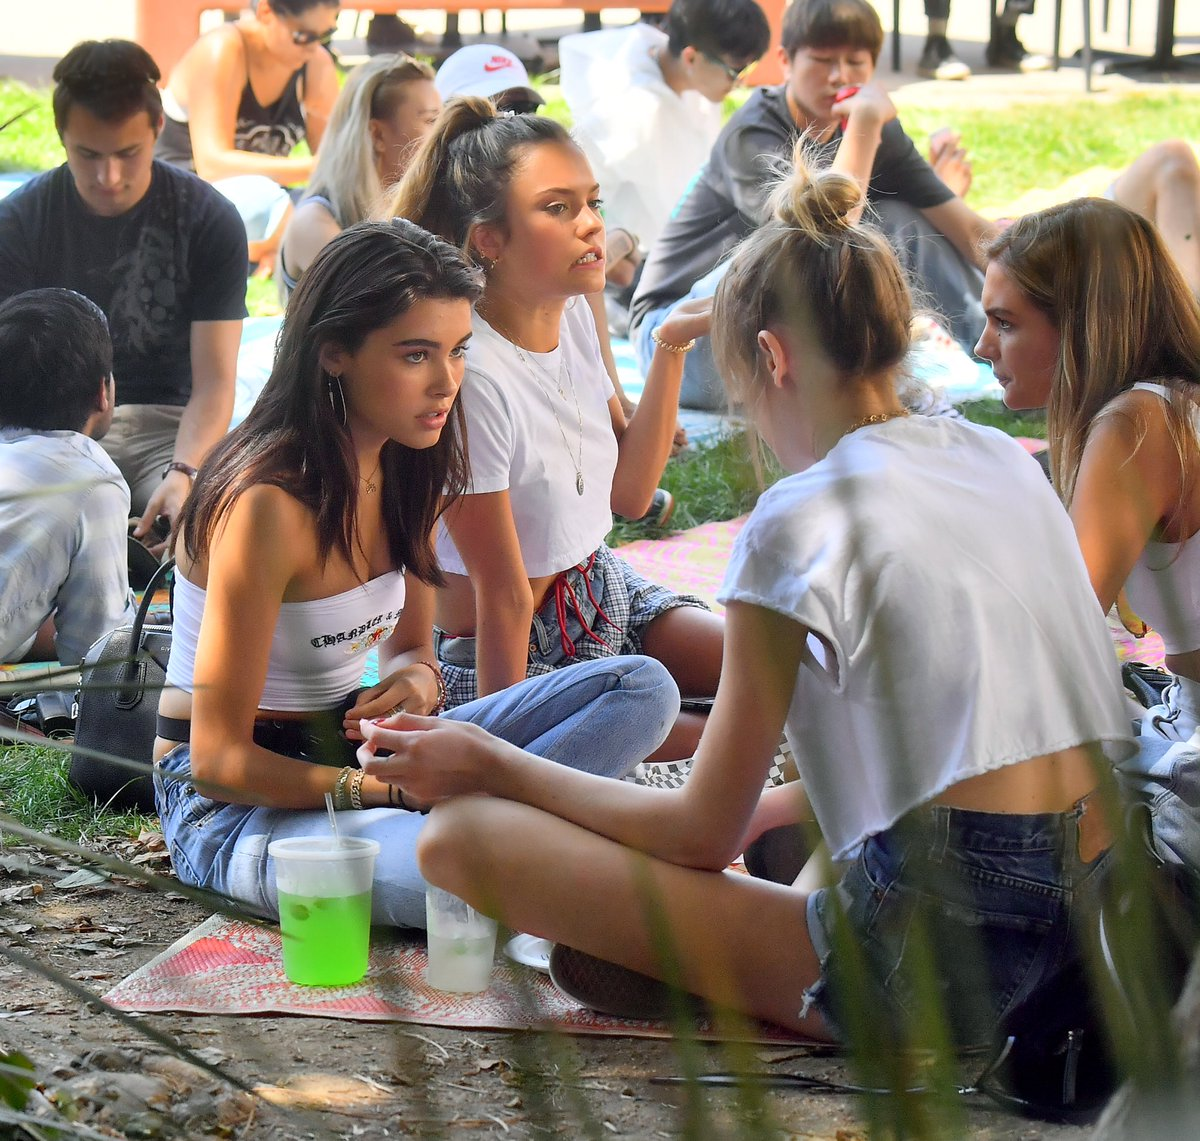 Watch Madison beer trading post flea market in hollywood video